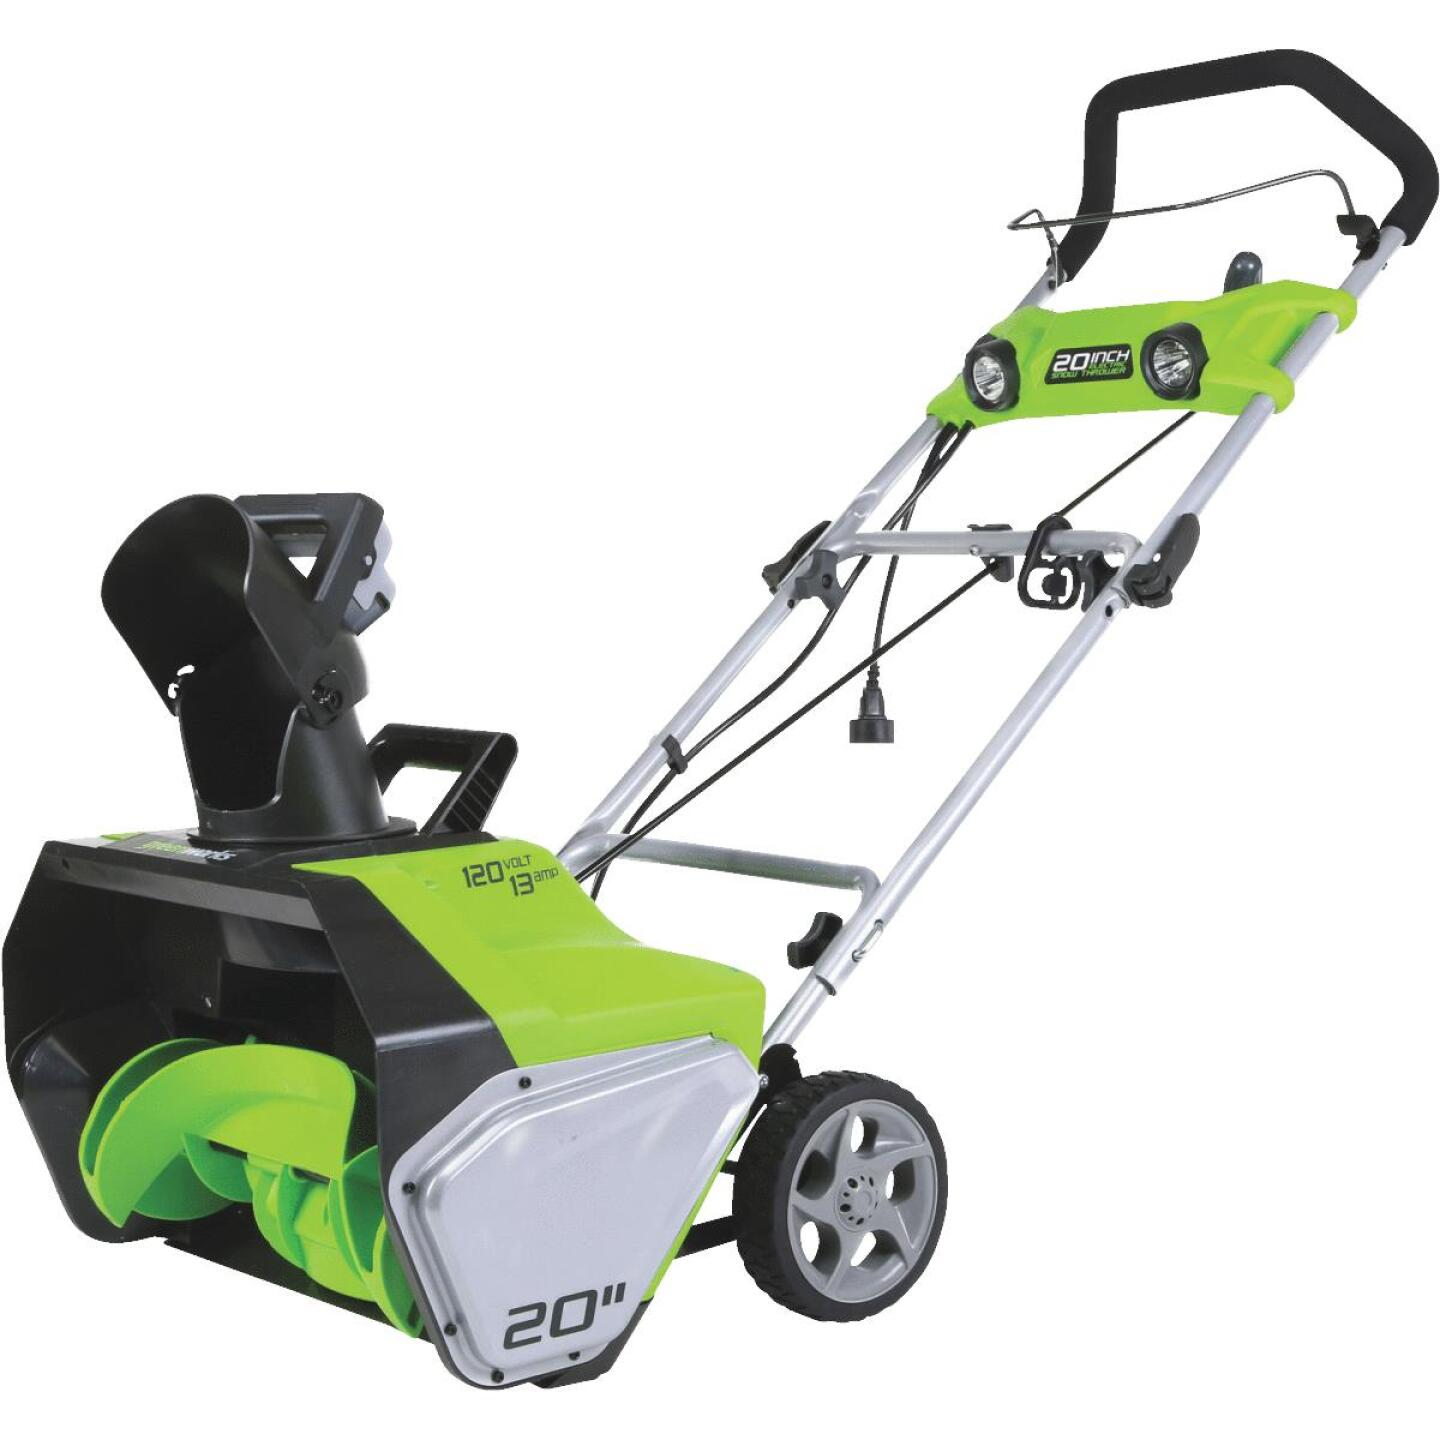 Greenworks 20 In. 13A Electric Snow Blower Image 1